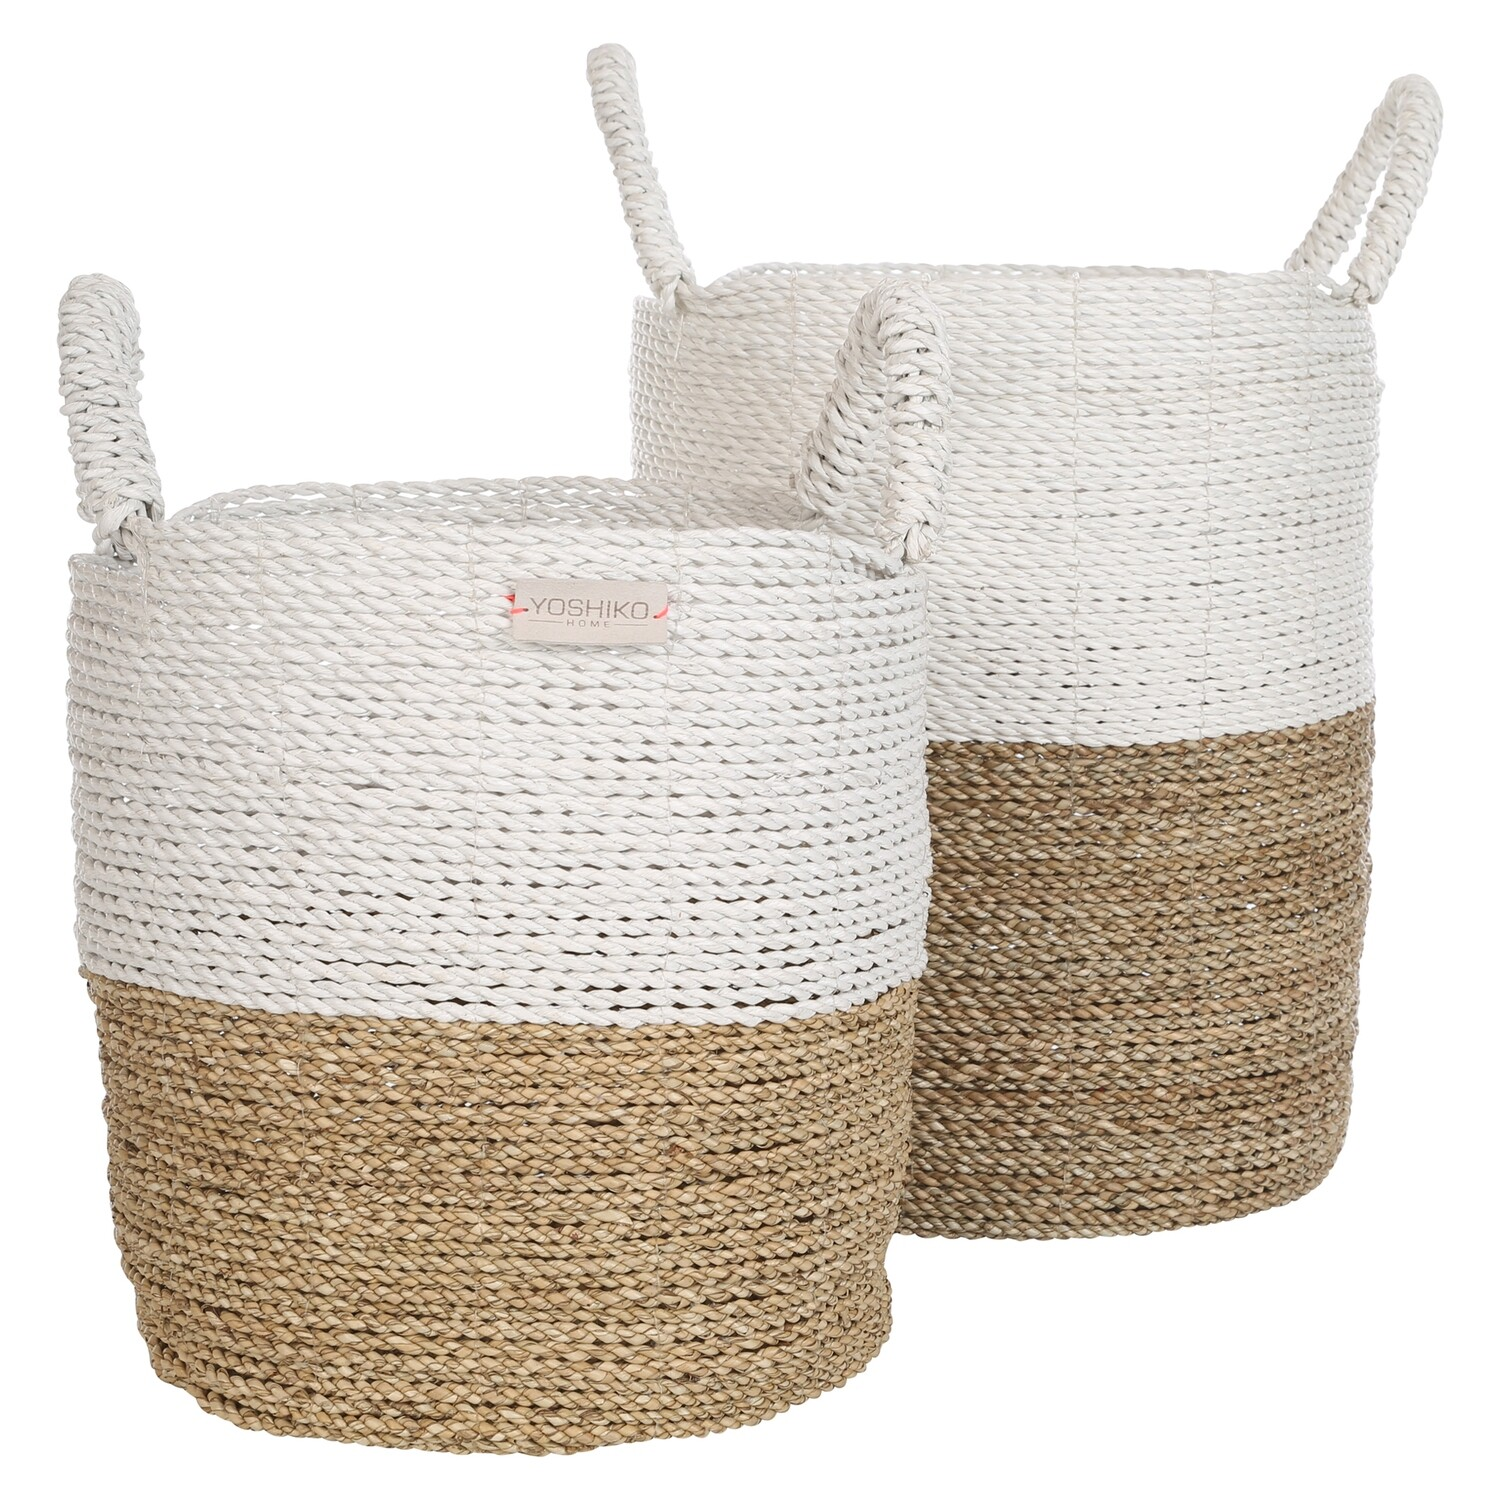 Seagrass Basket with handles - Large